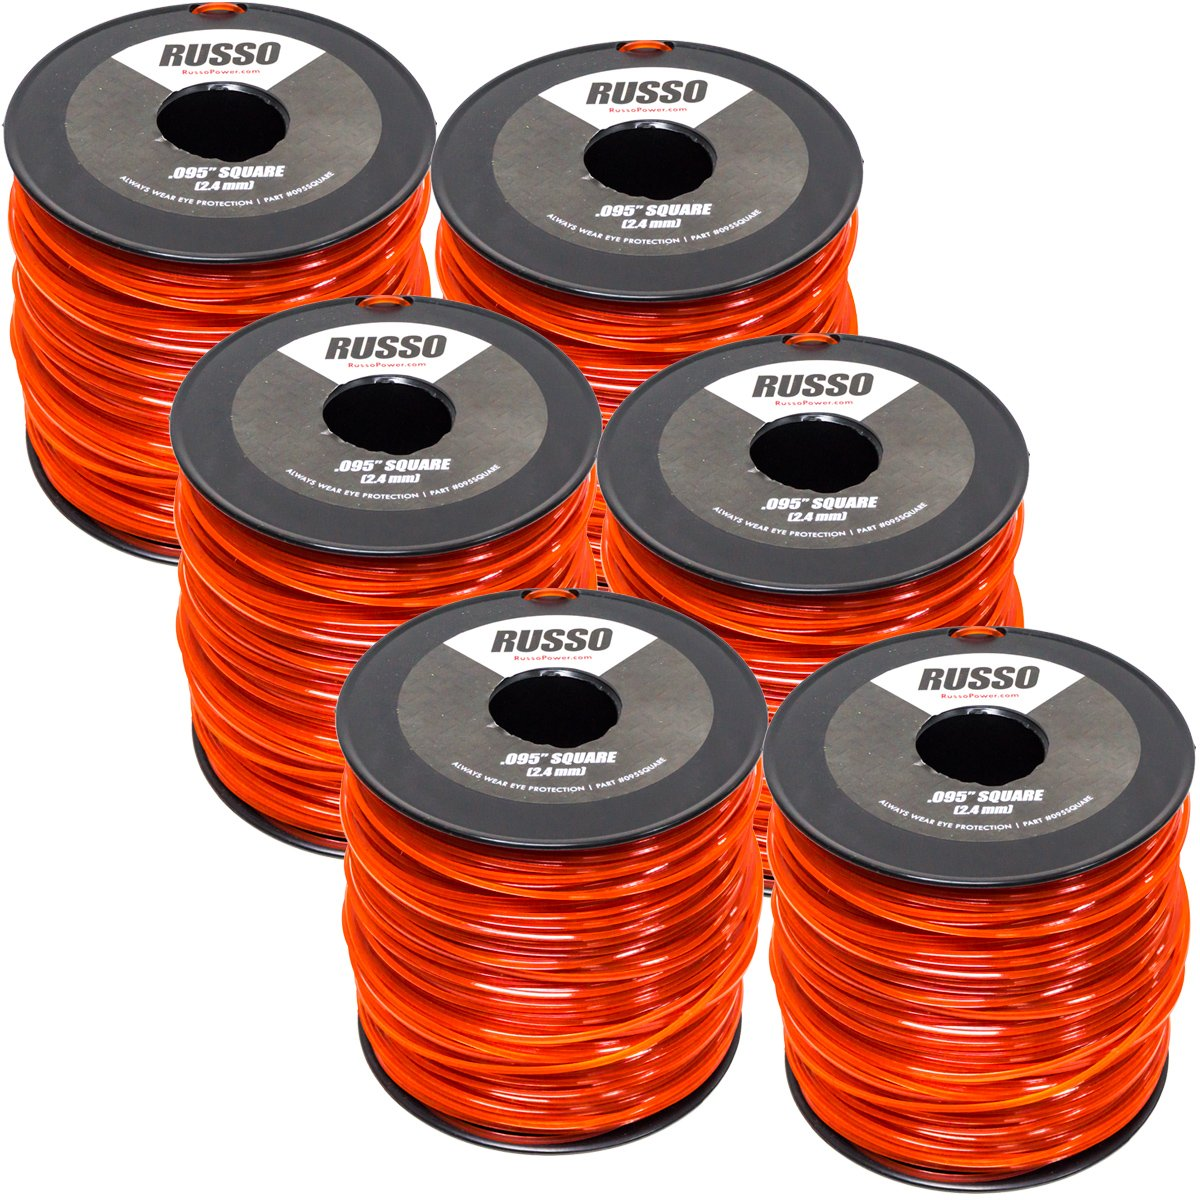 6 Pack 095 Square 5lb Commercial String Trimmer Line Echo Stihl RedMax by Russo